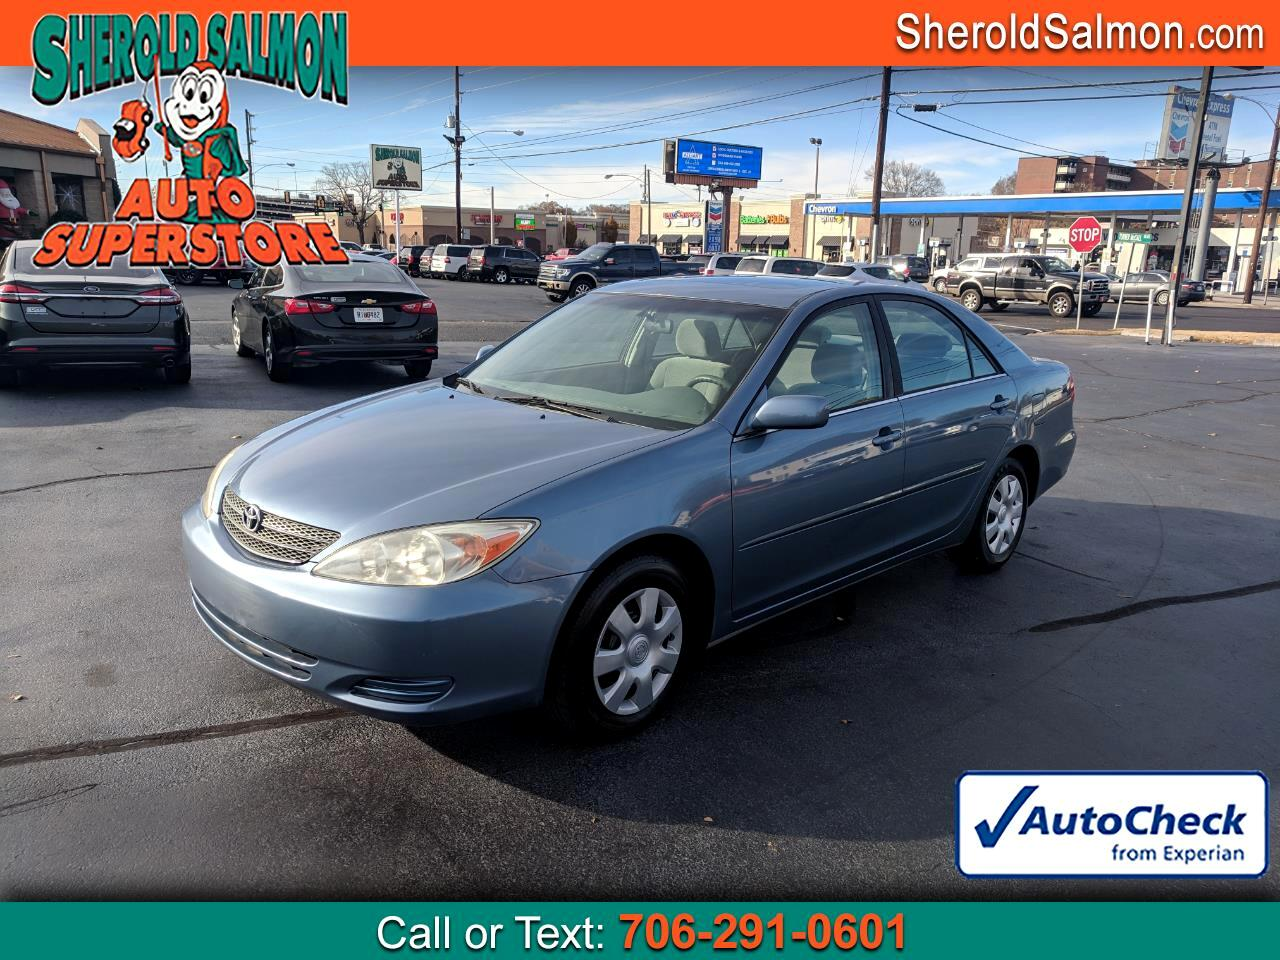 2003 Toyota Camry 4dr Sdn LE Auto (Natl)